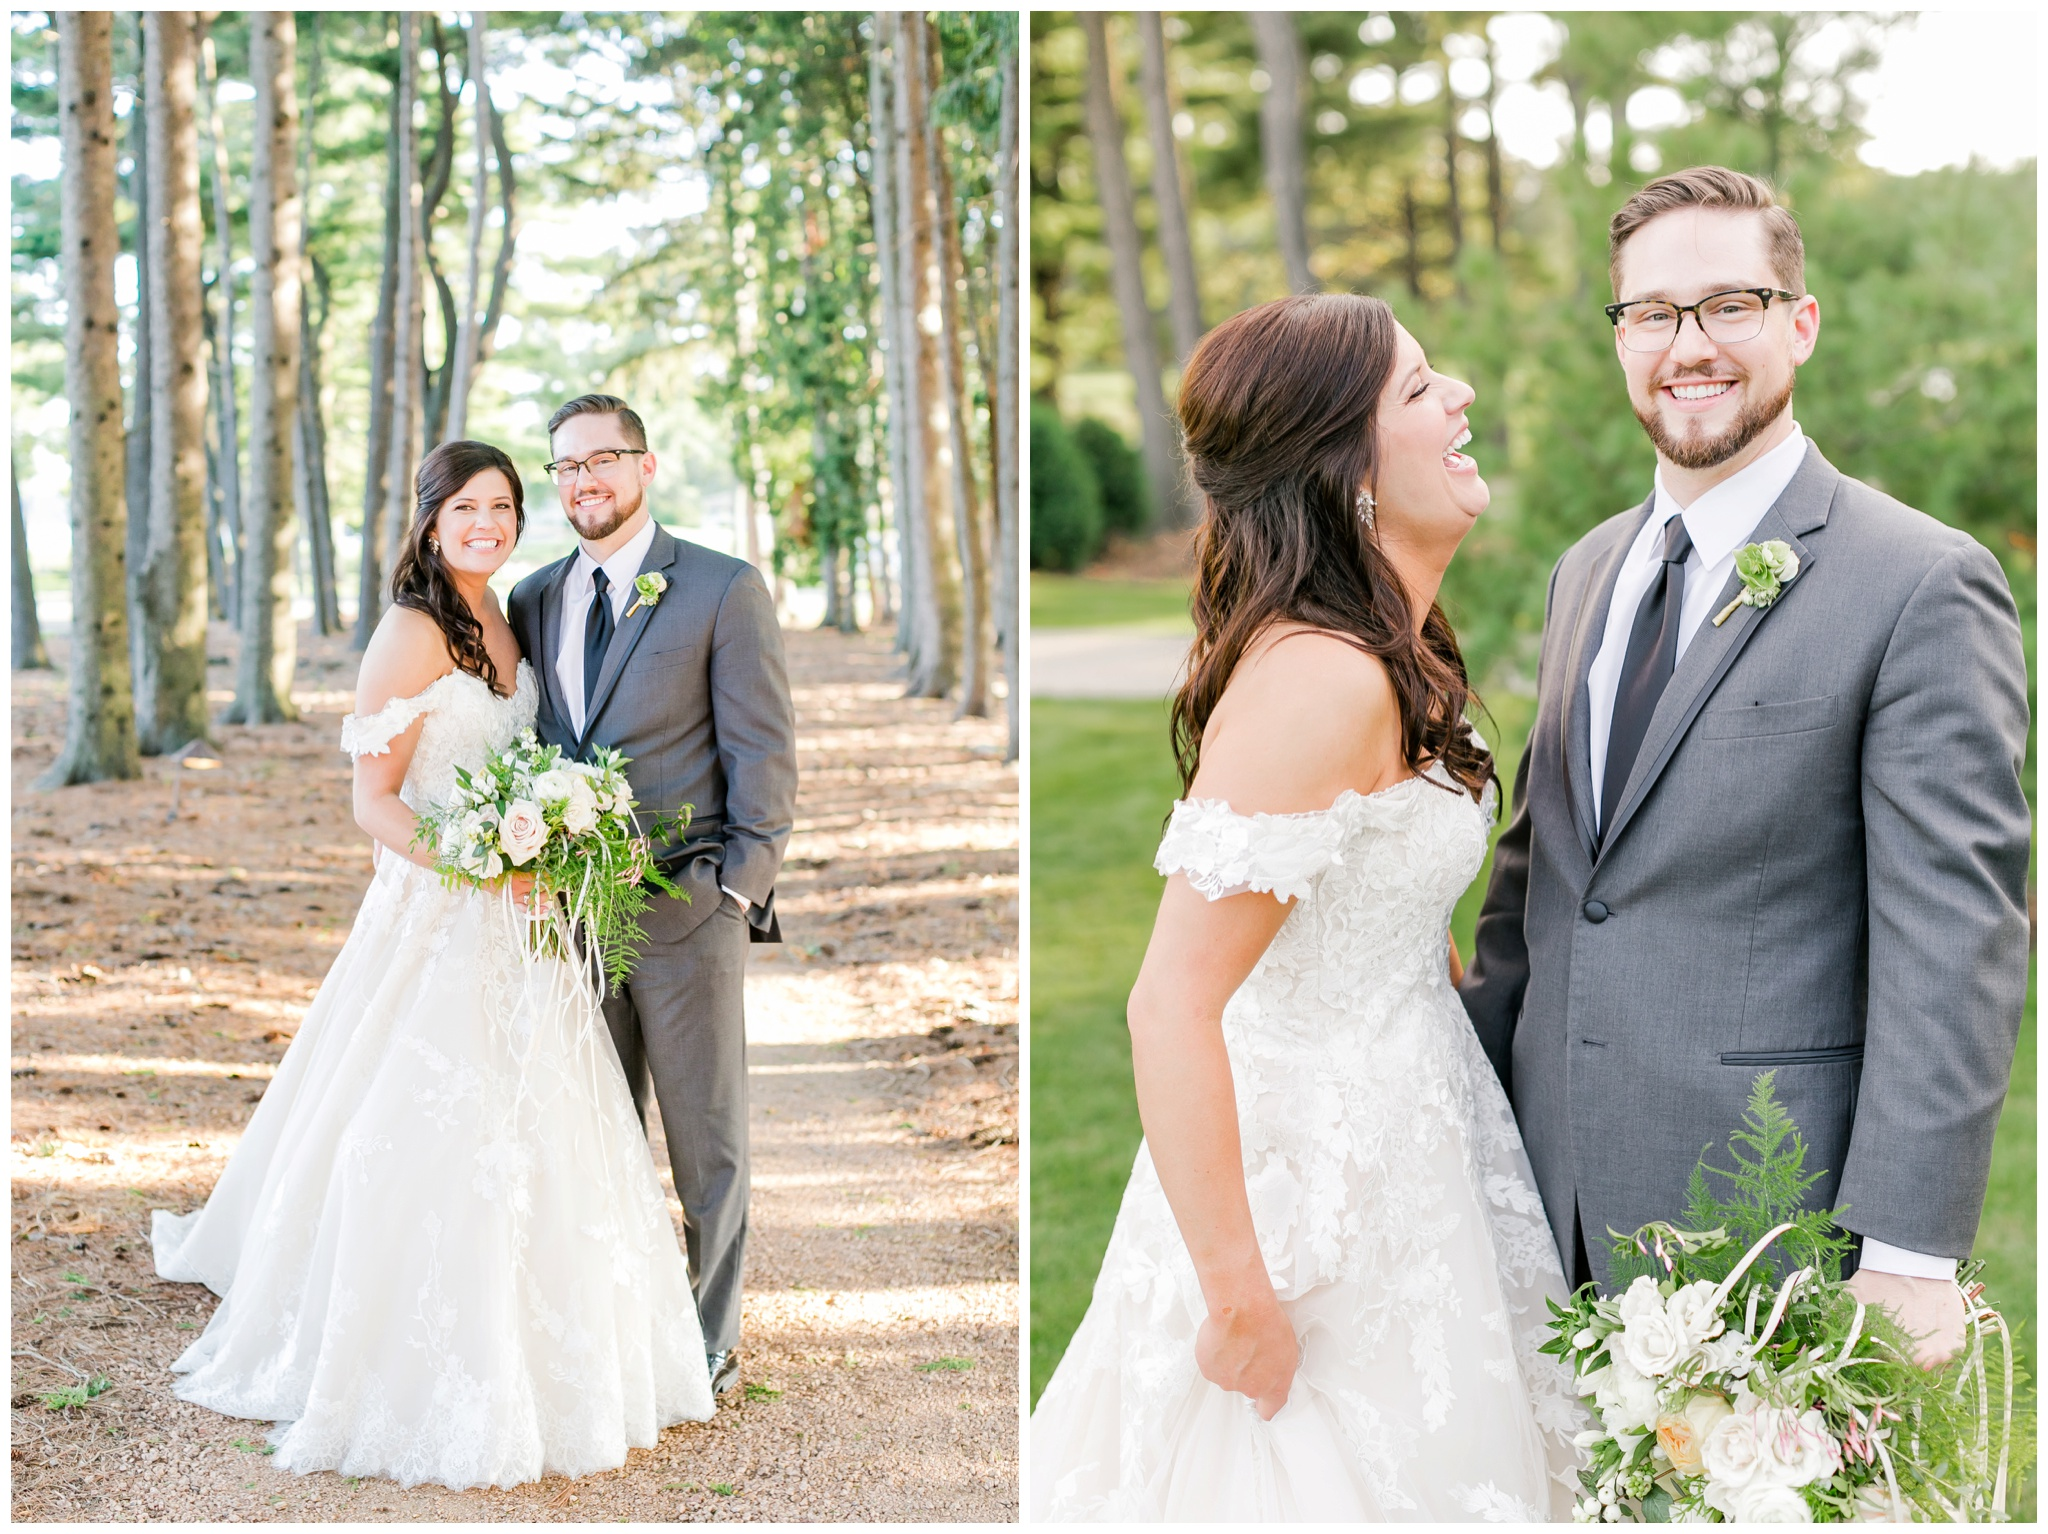 bishops_bay_country_club_wedding_middleton_wisconsin_caynay_photo_4736.jpg